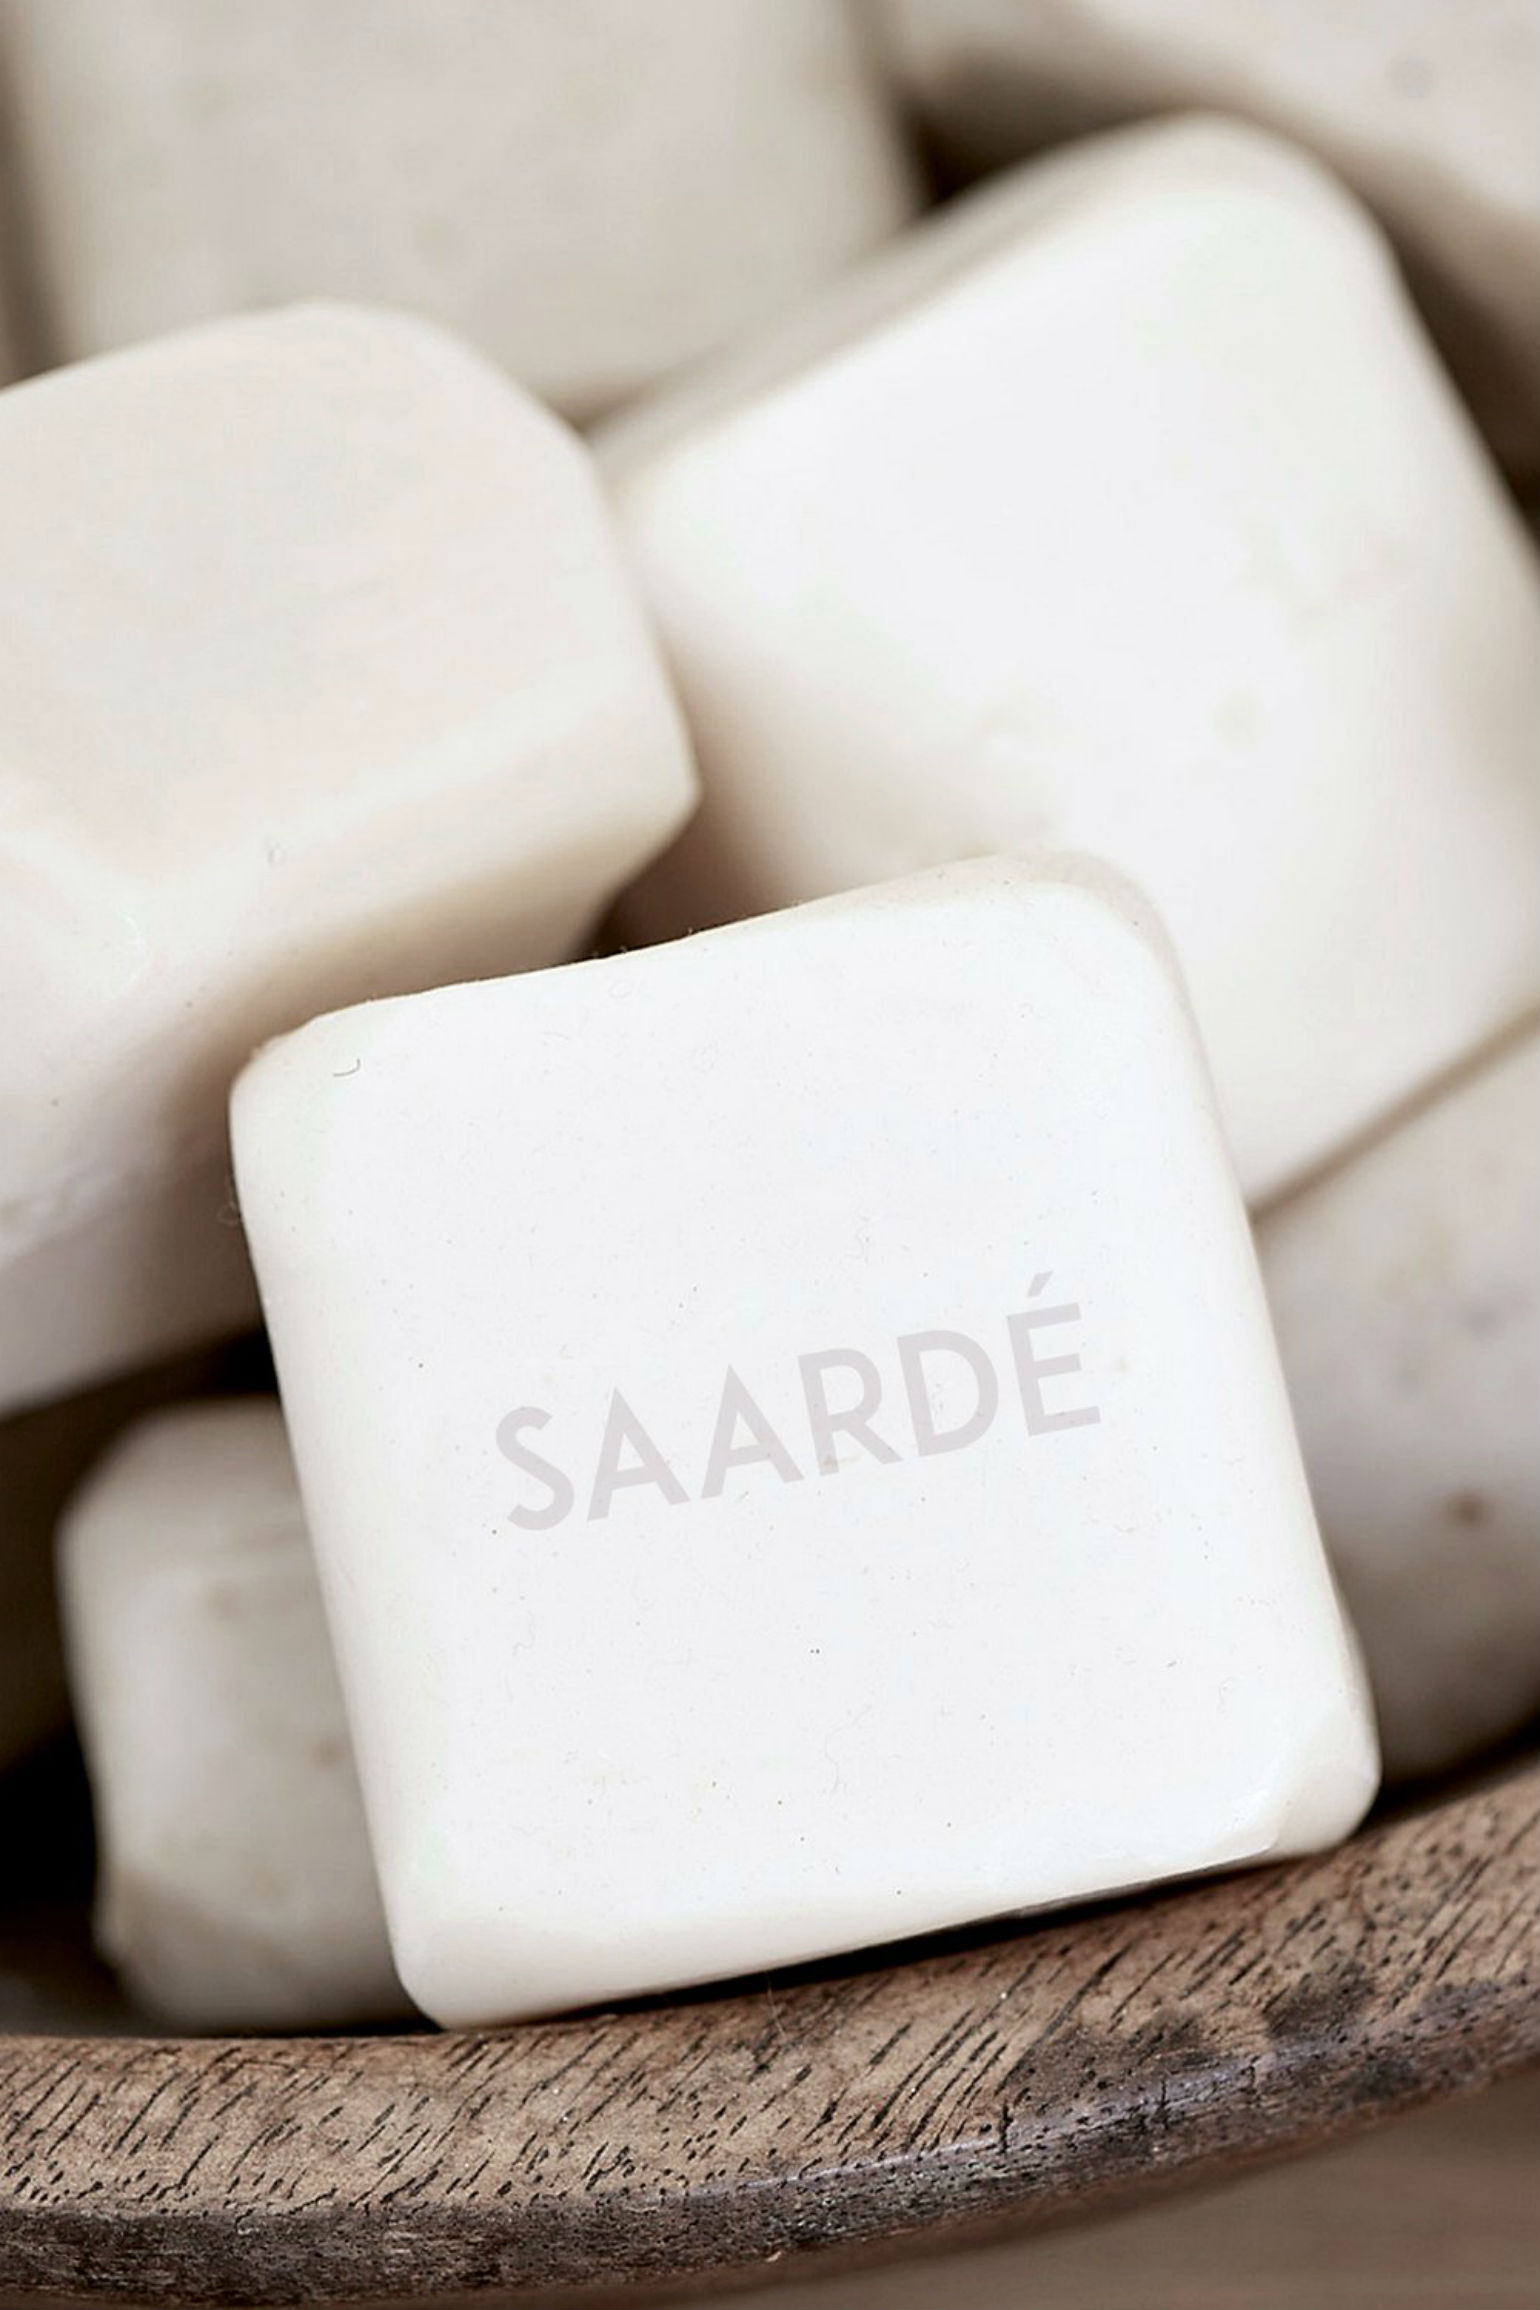 Saarde Olive Oil Stone Soap Natural